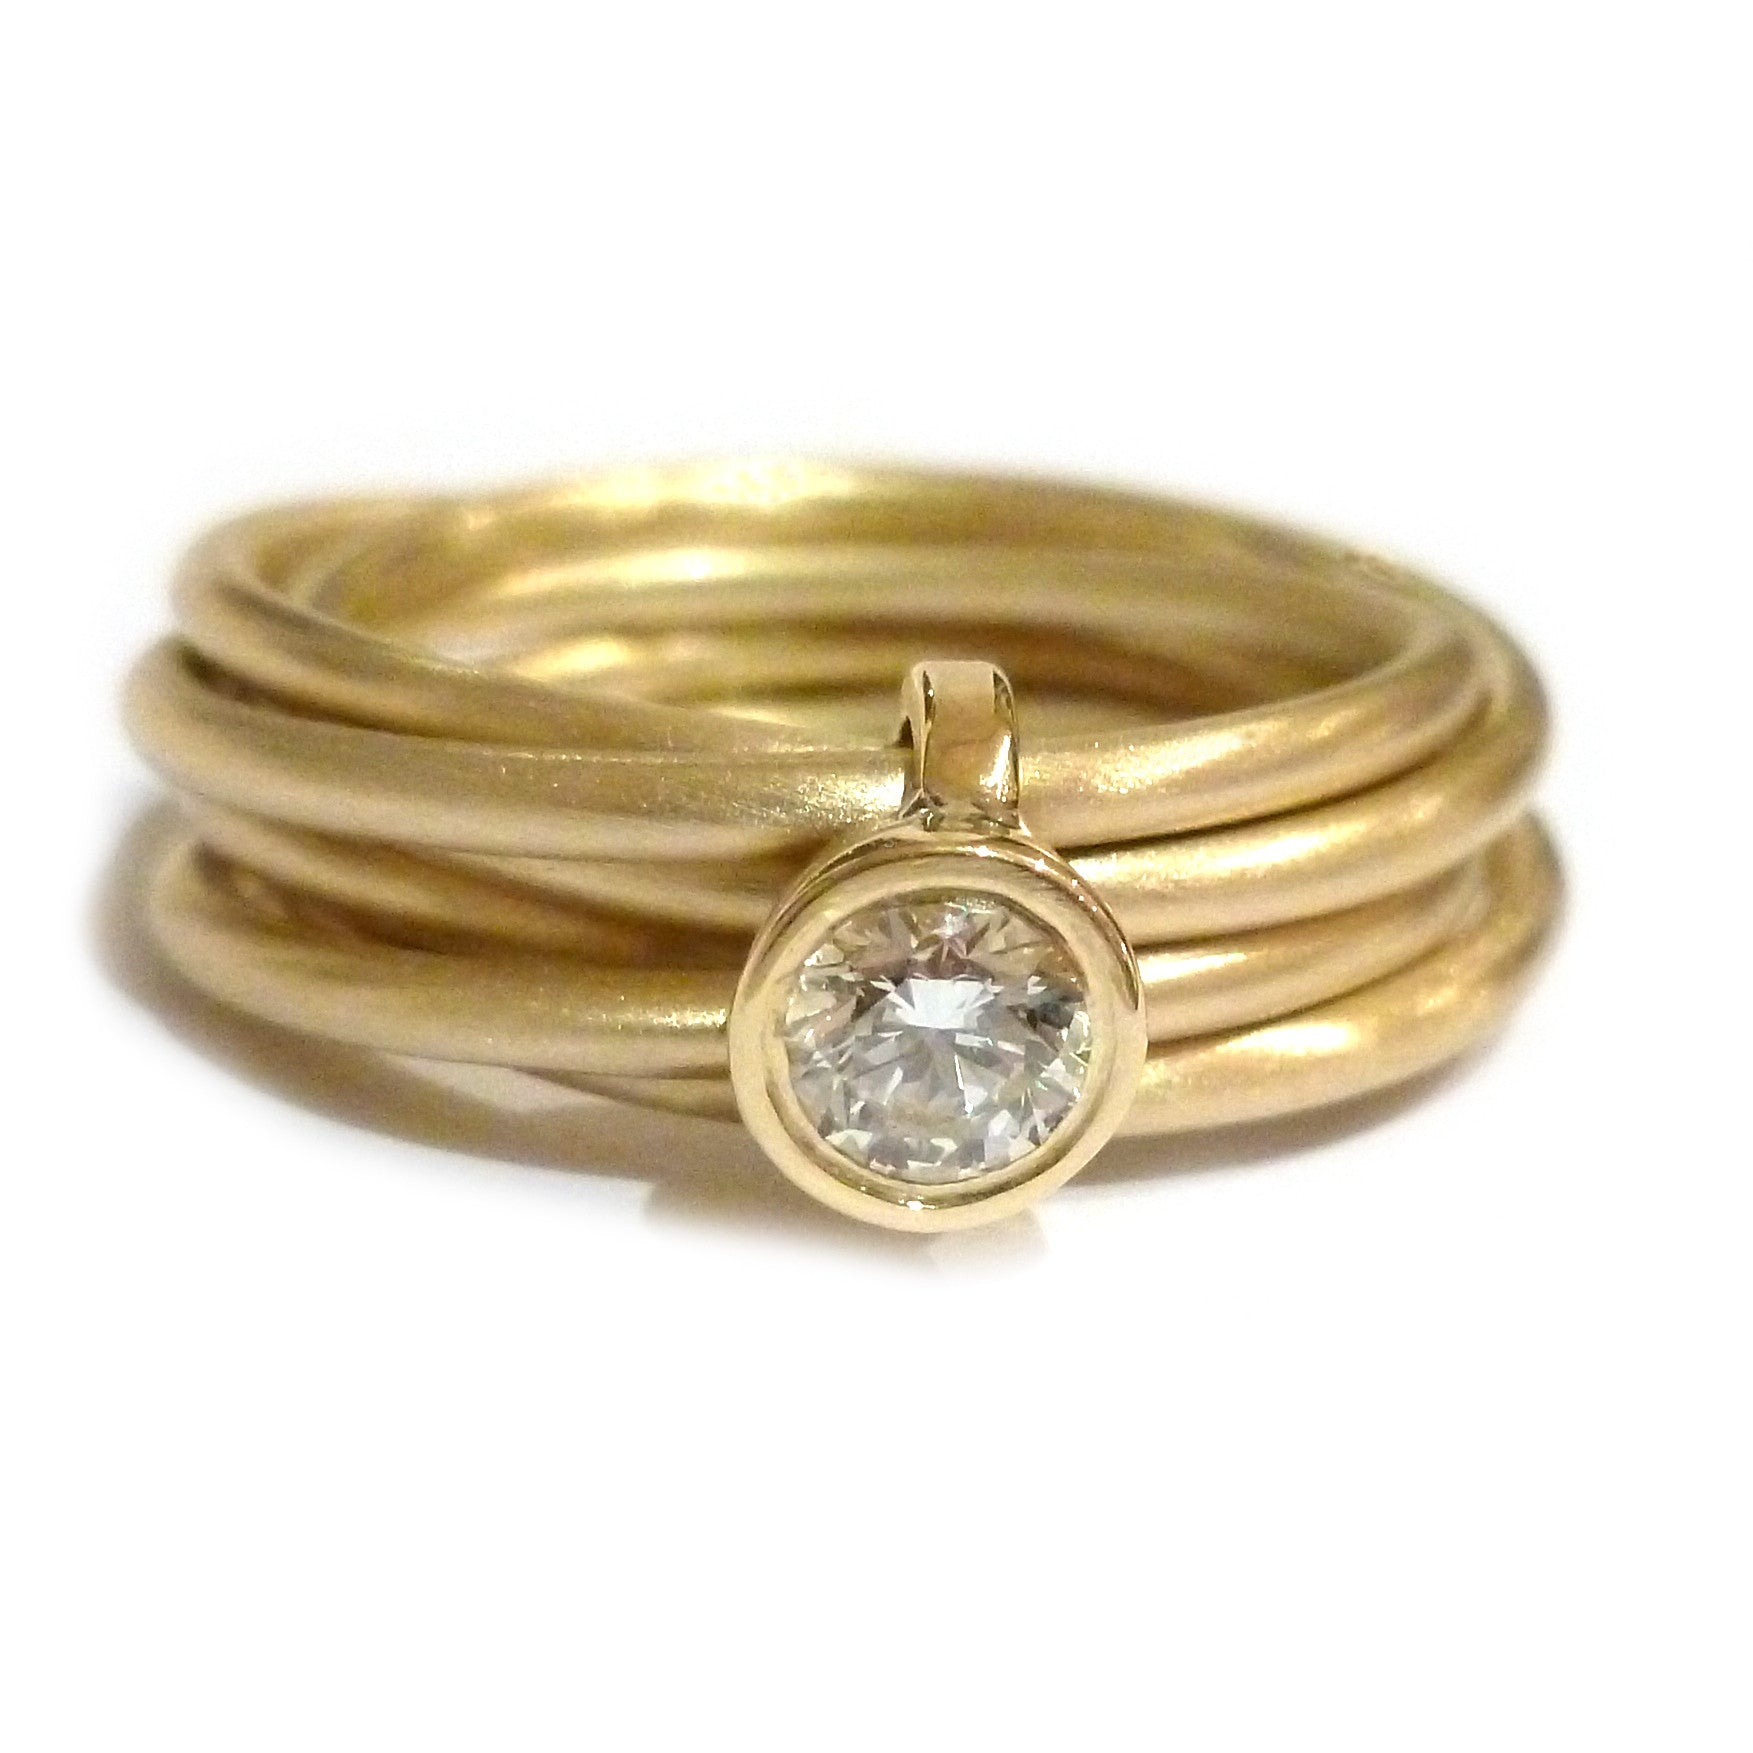 Contemporary, bespoke and modern 18k yellow gold russian style diamond wedding ring, commitment ring, eternity ring, brushed finish. Handmade by Sue Lane, UK. Unique engagement ring. Multi band ring or interlocking ring.